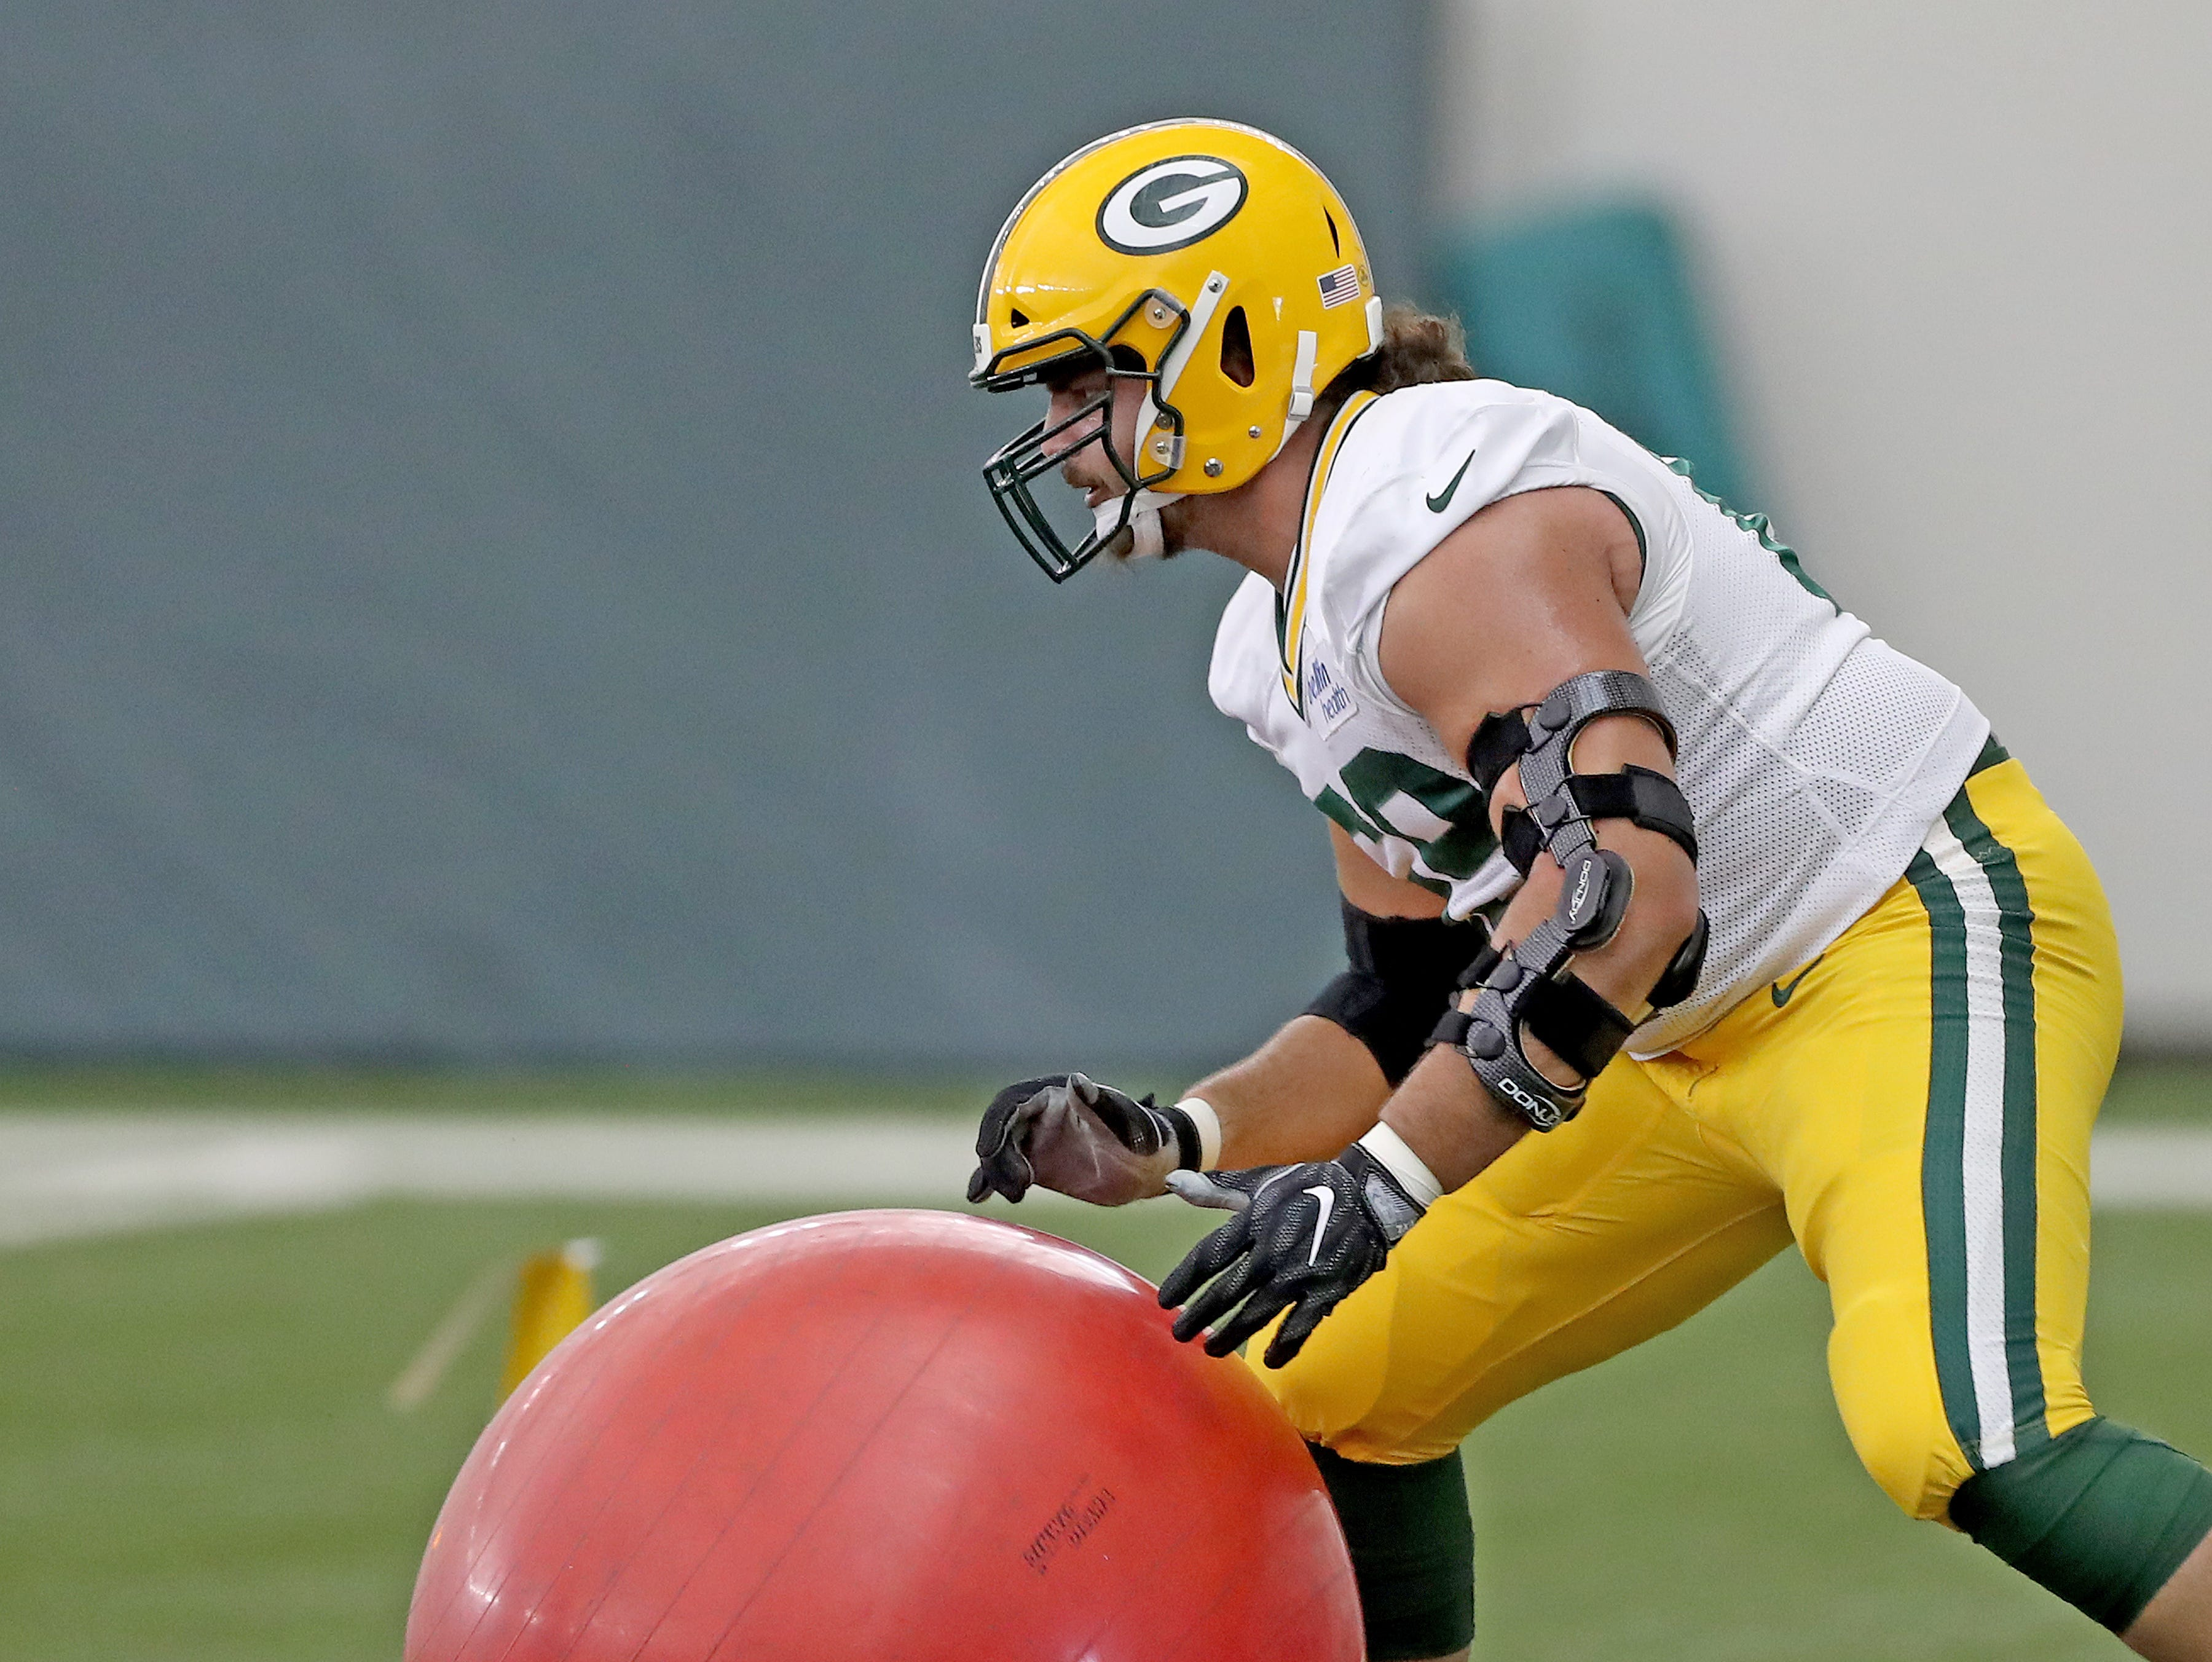 Green Bay Packers offensive tackle David Bakhtiari (69) during Packers practice in the Don Hutson Center Monday, September 3, 2018 in Ashwaubenon, Wis